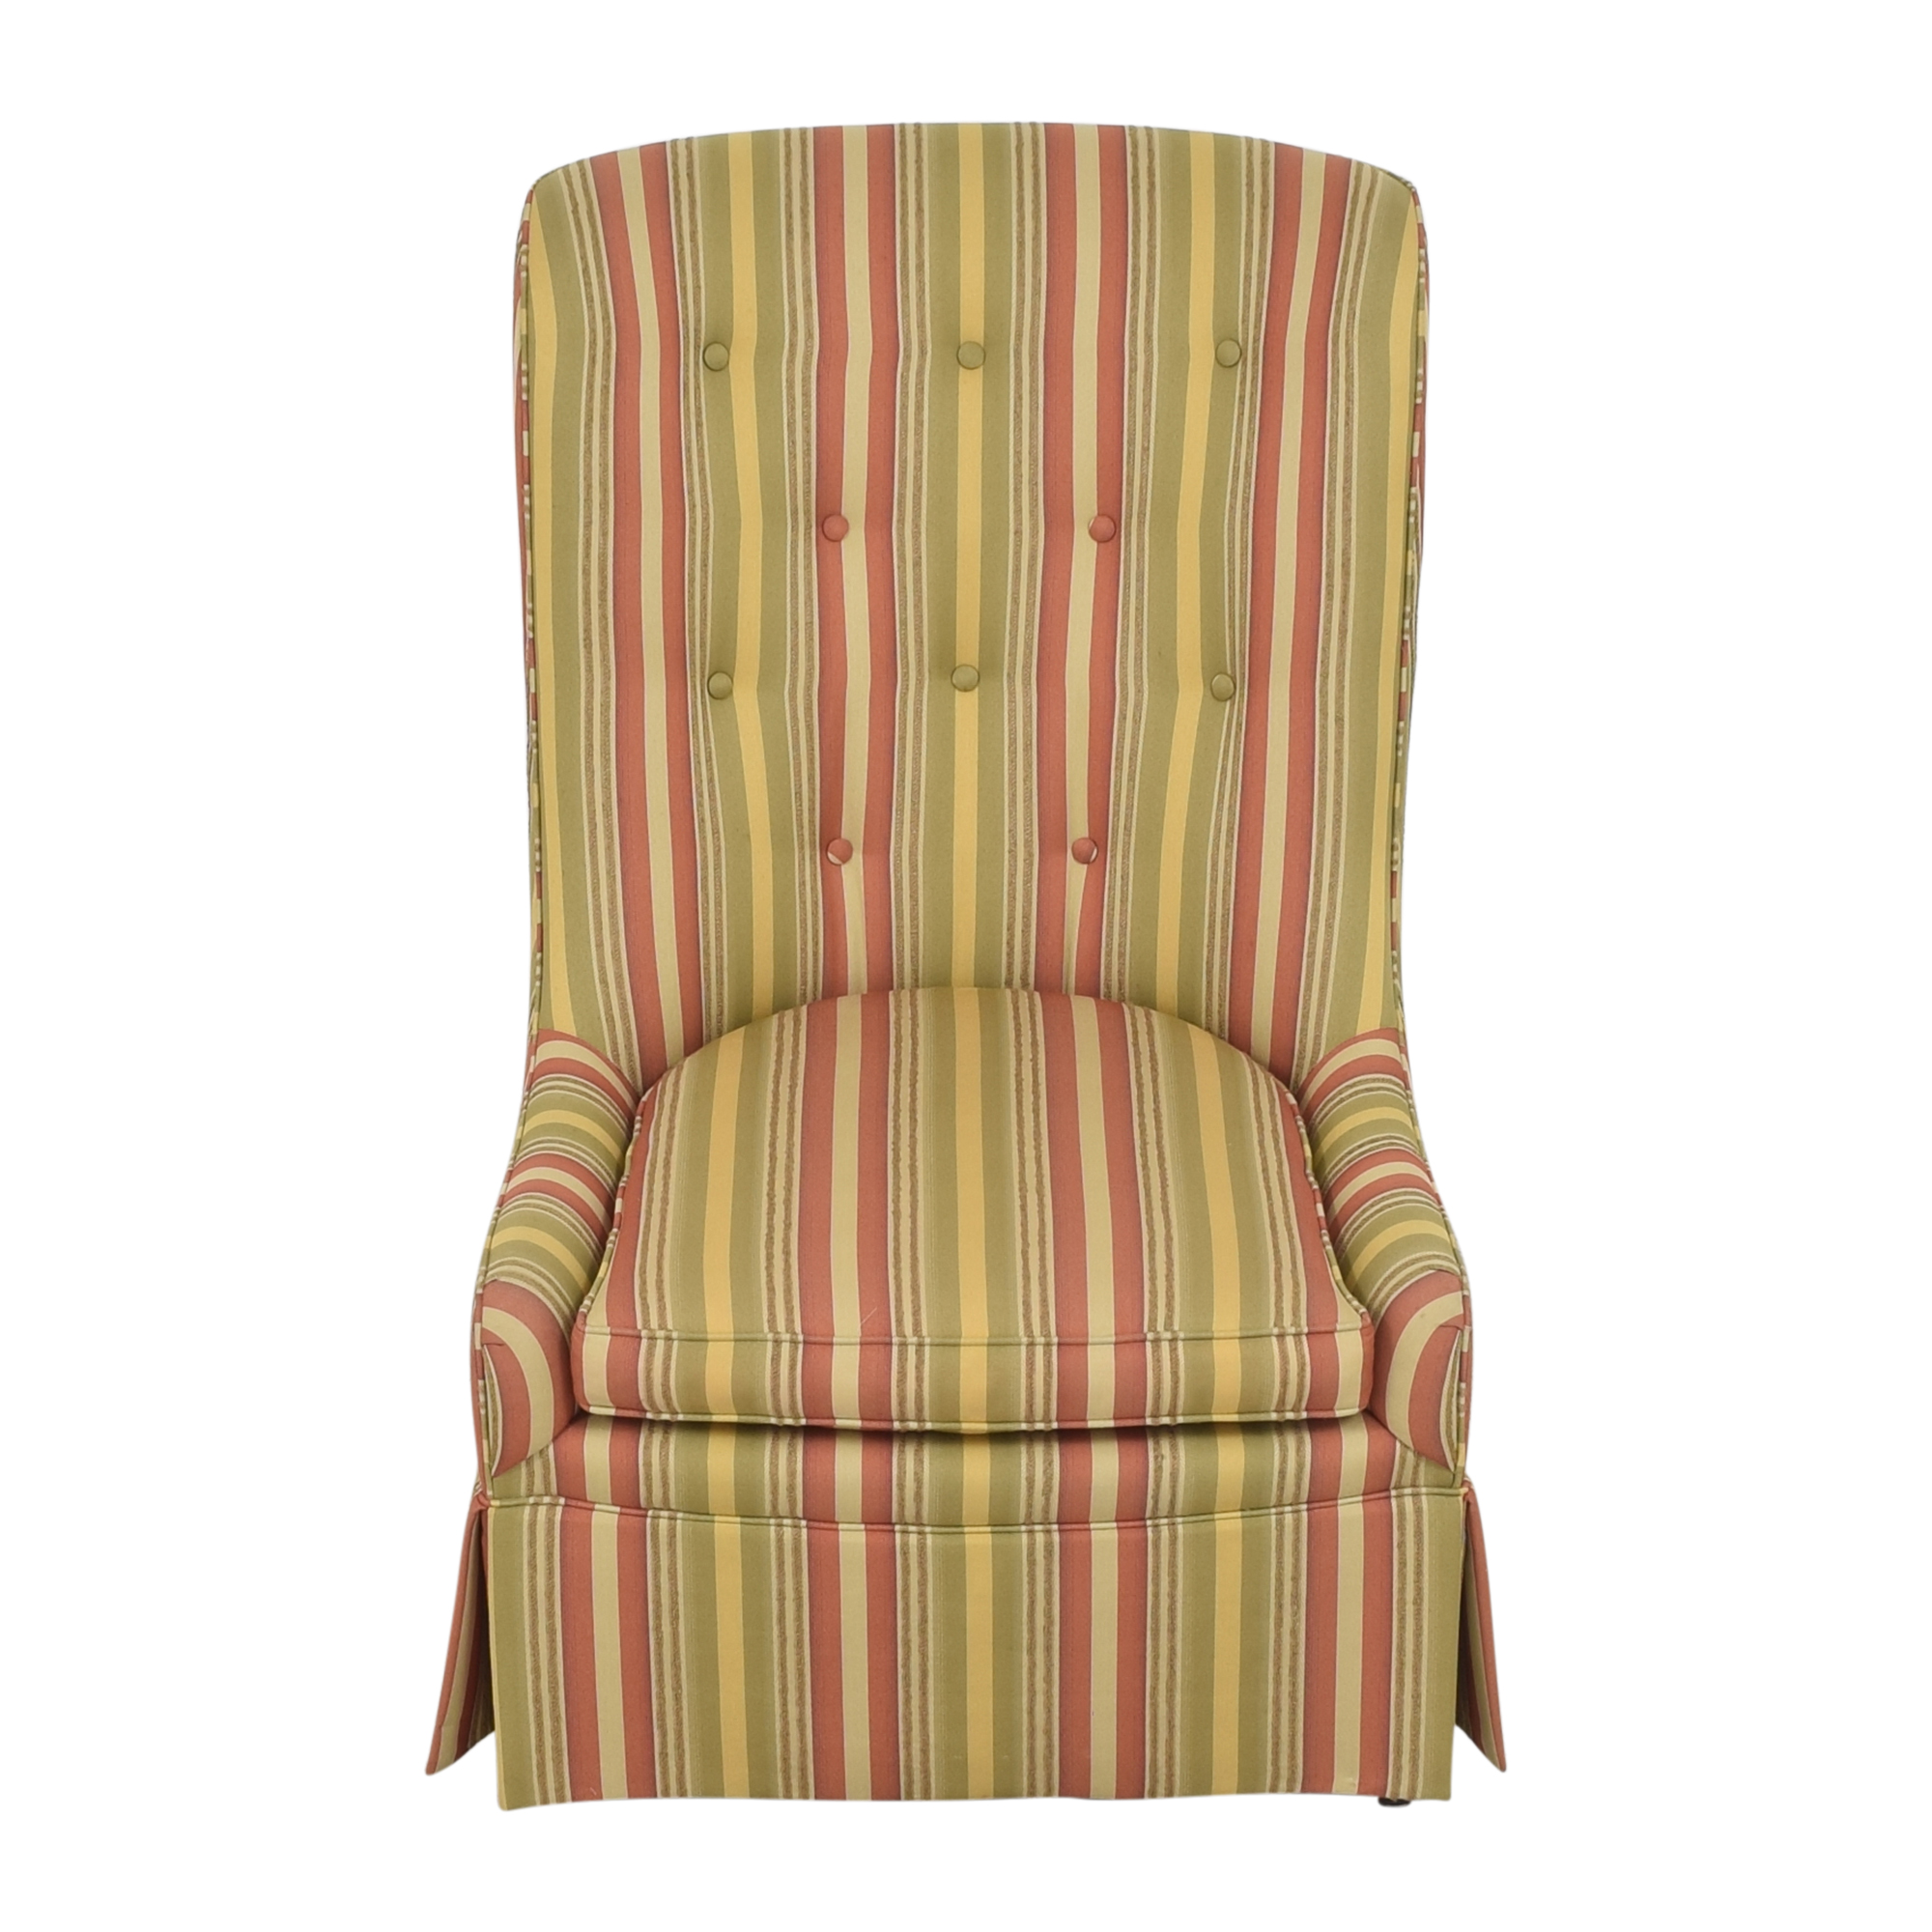 Theodore Alexander Theodore Alexander Althorp Living History Accent Chair for sale